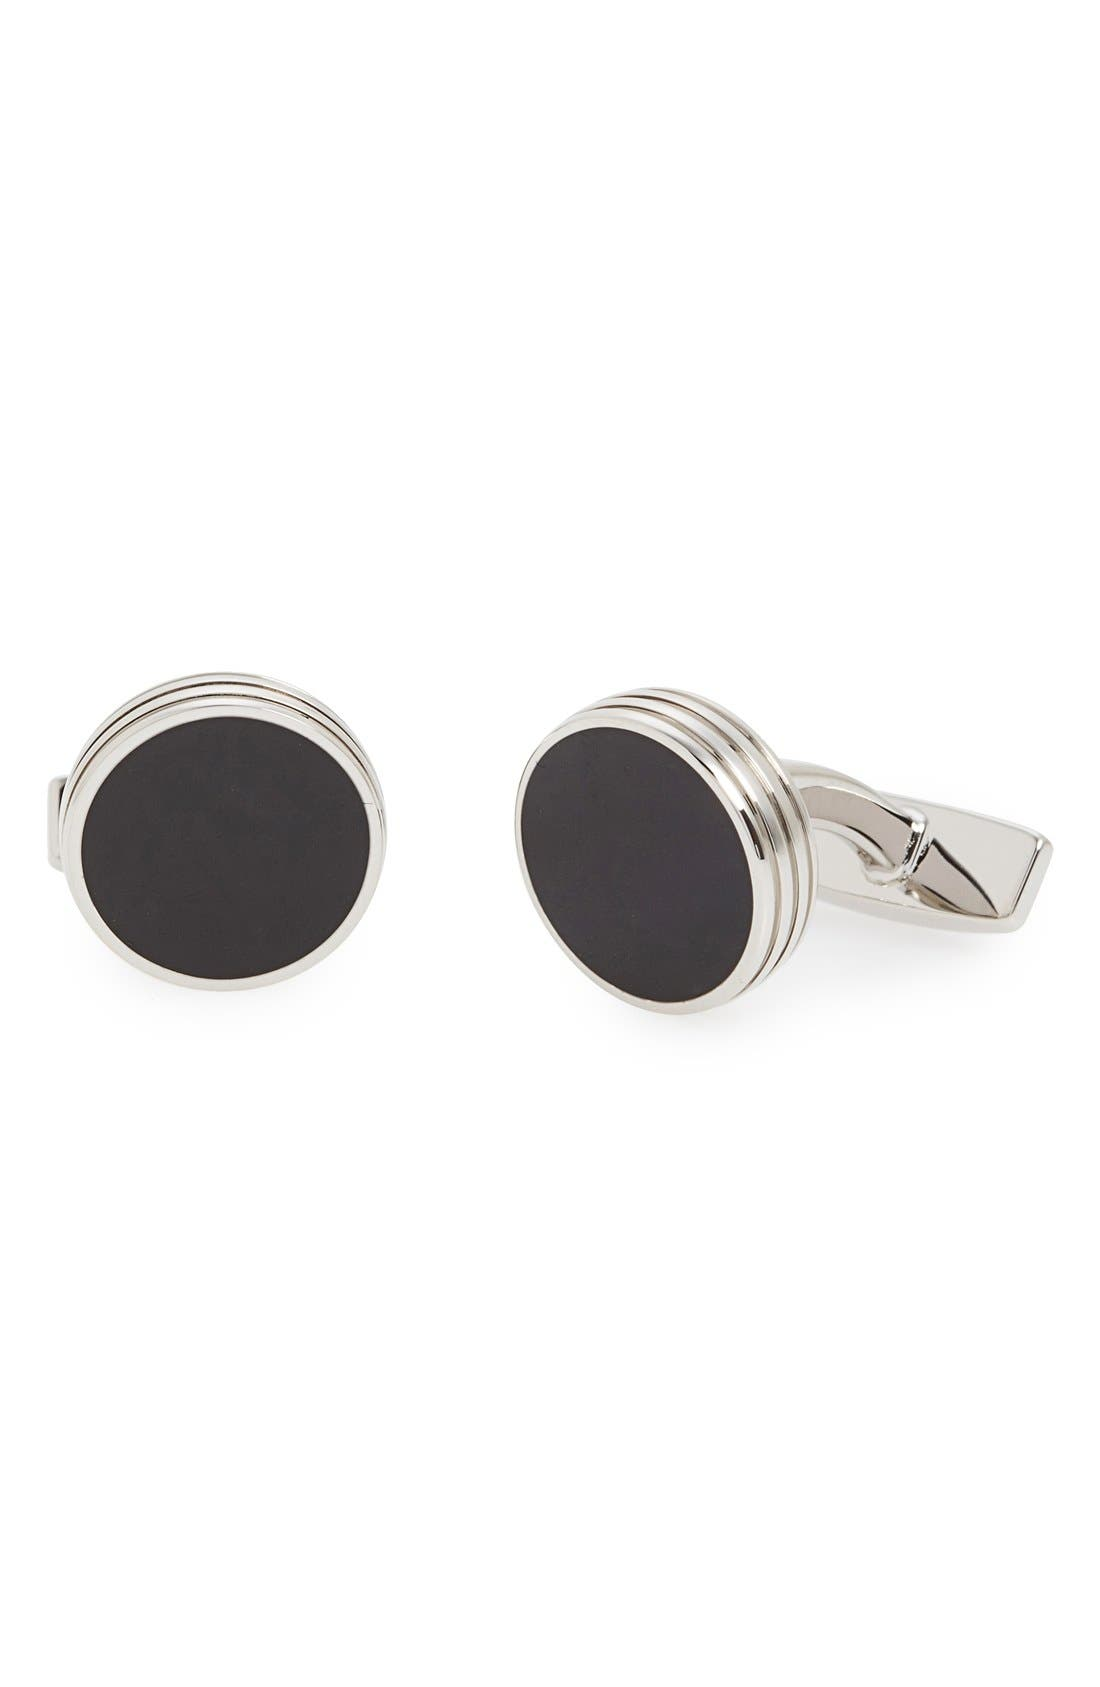 'Roy' Cuff Links,                         Main,                         color, Silver/ Black